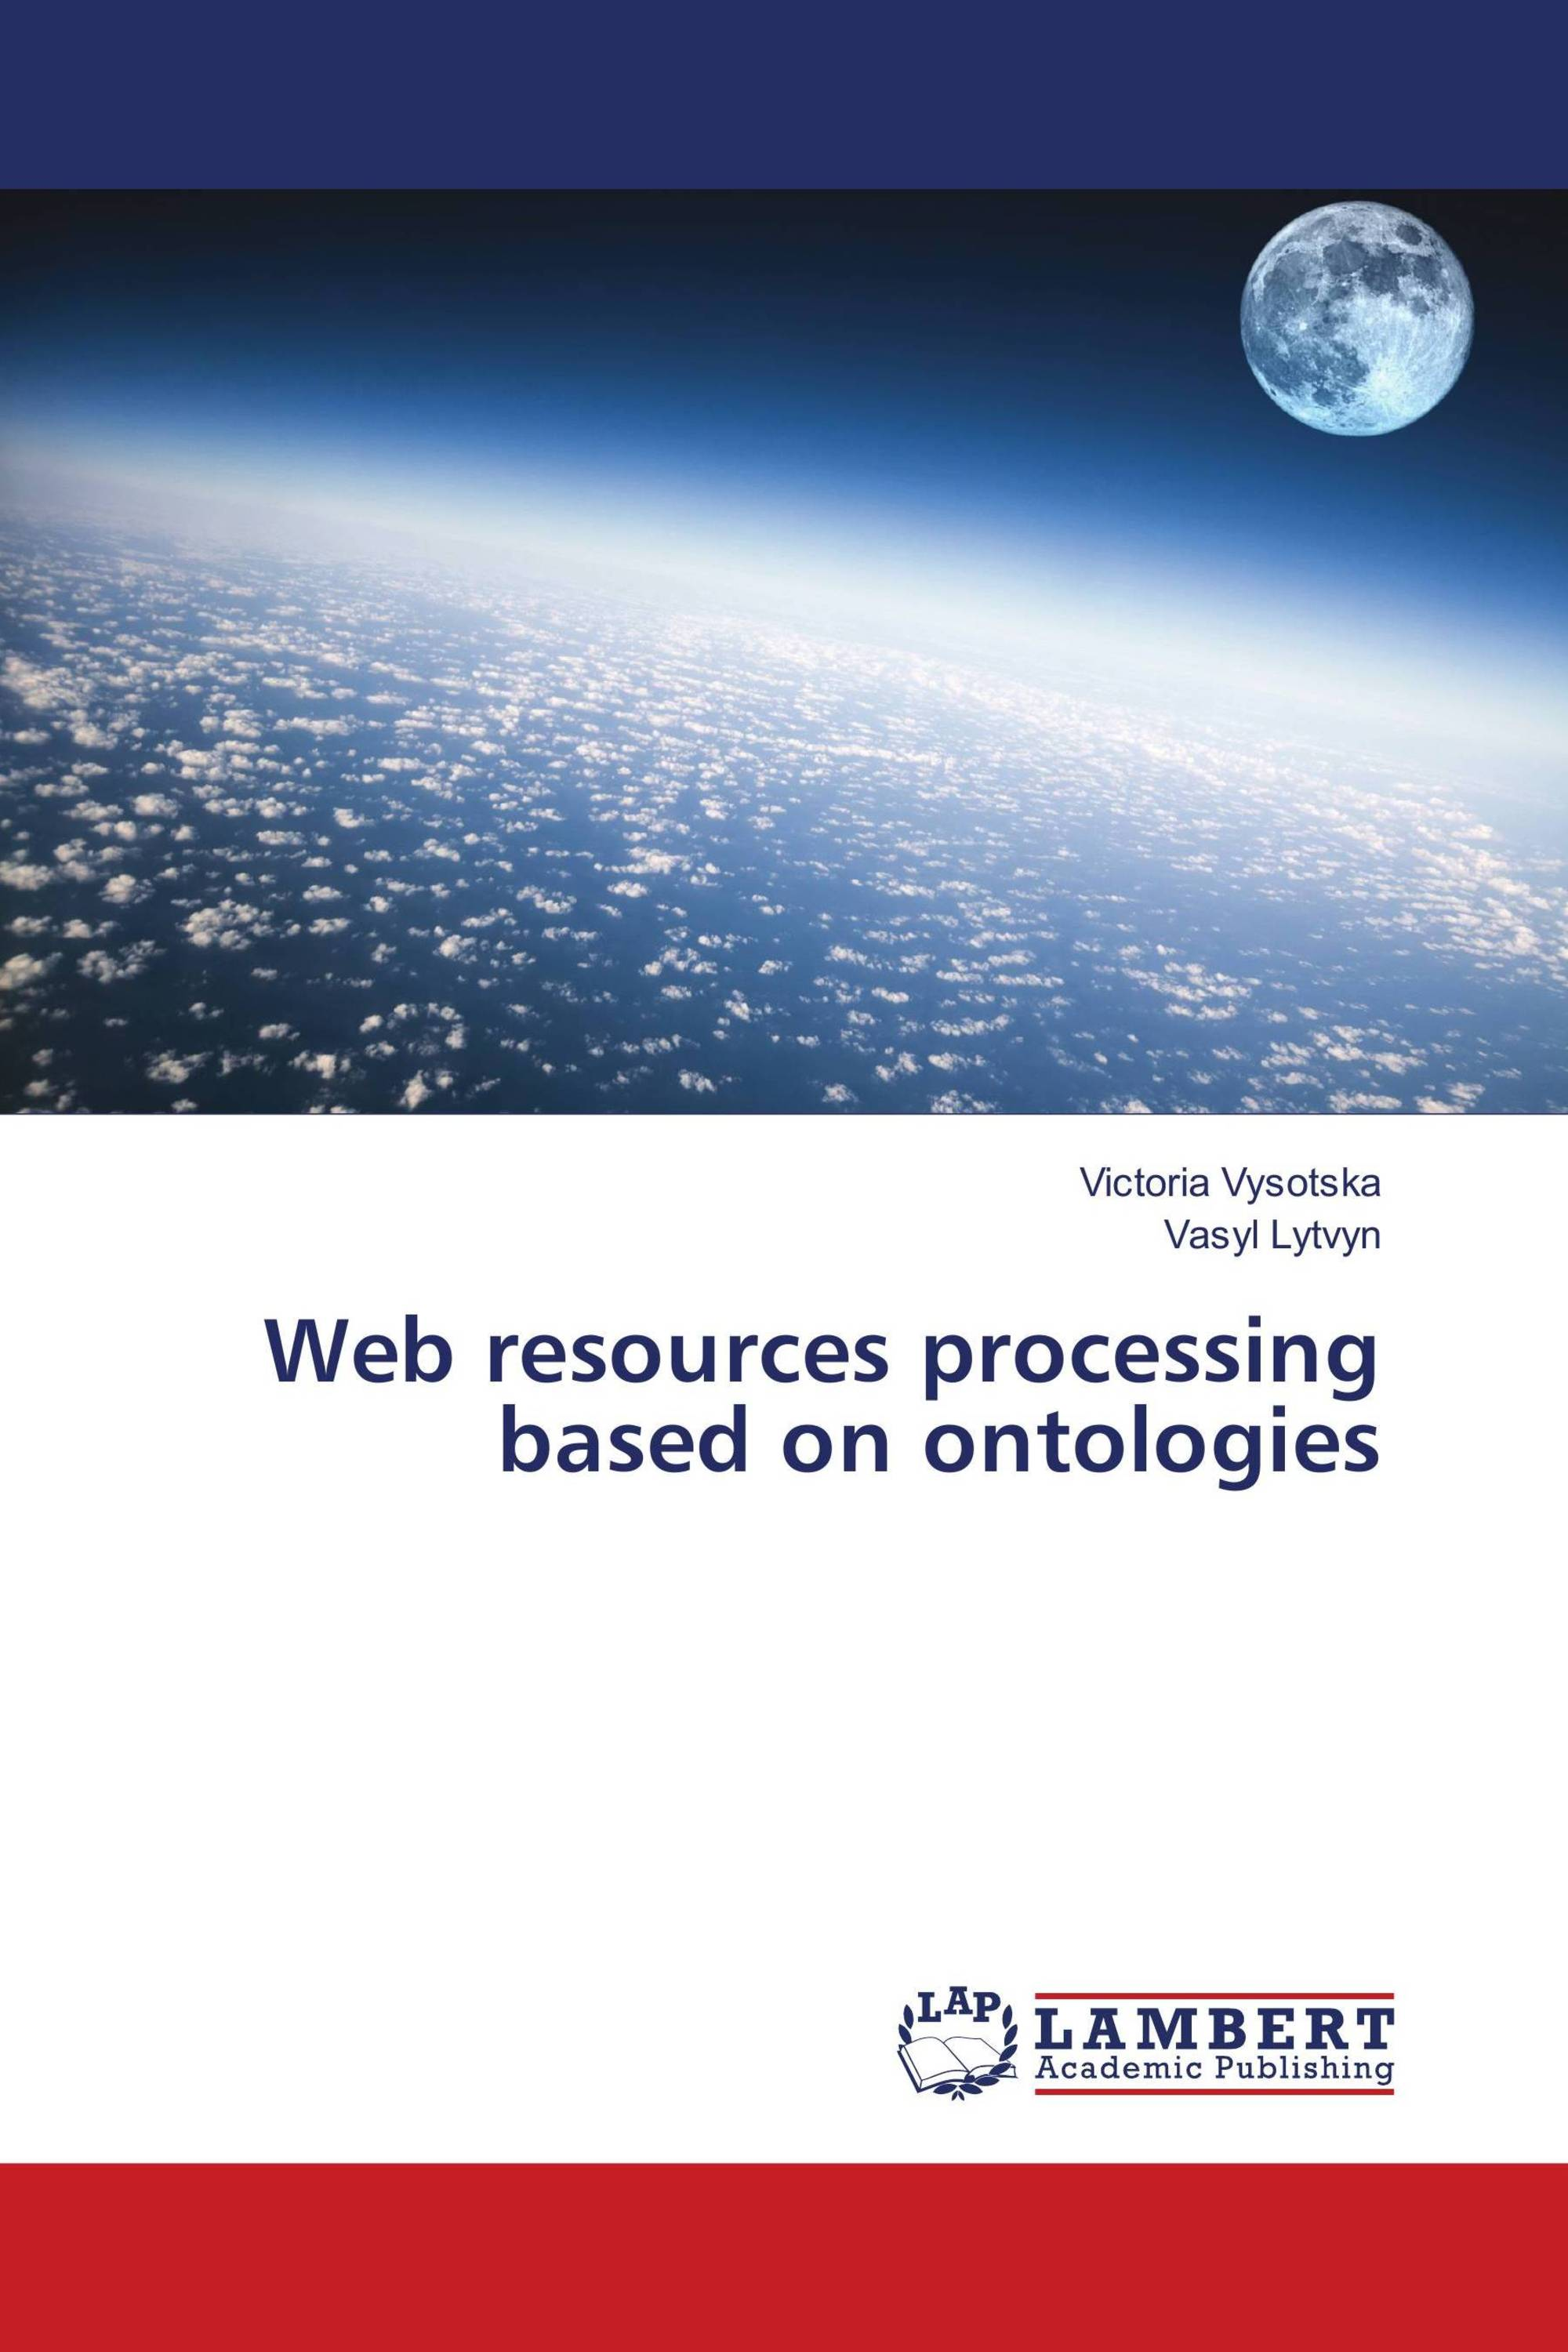 Web resources processing based on ontologies